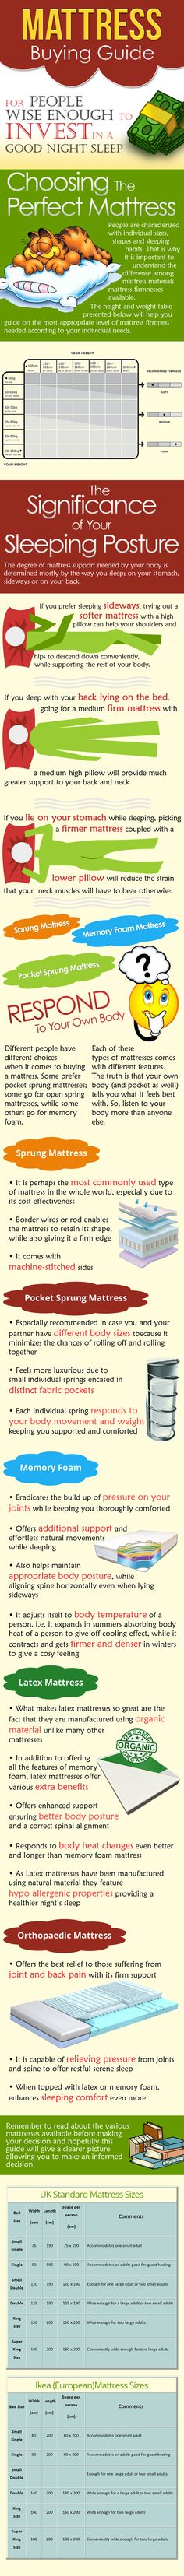 Mattress buying guide. #MattressGuide